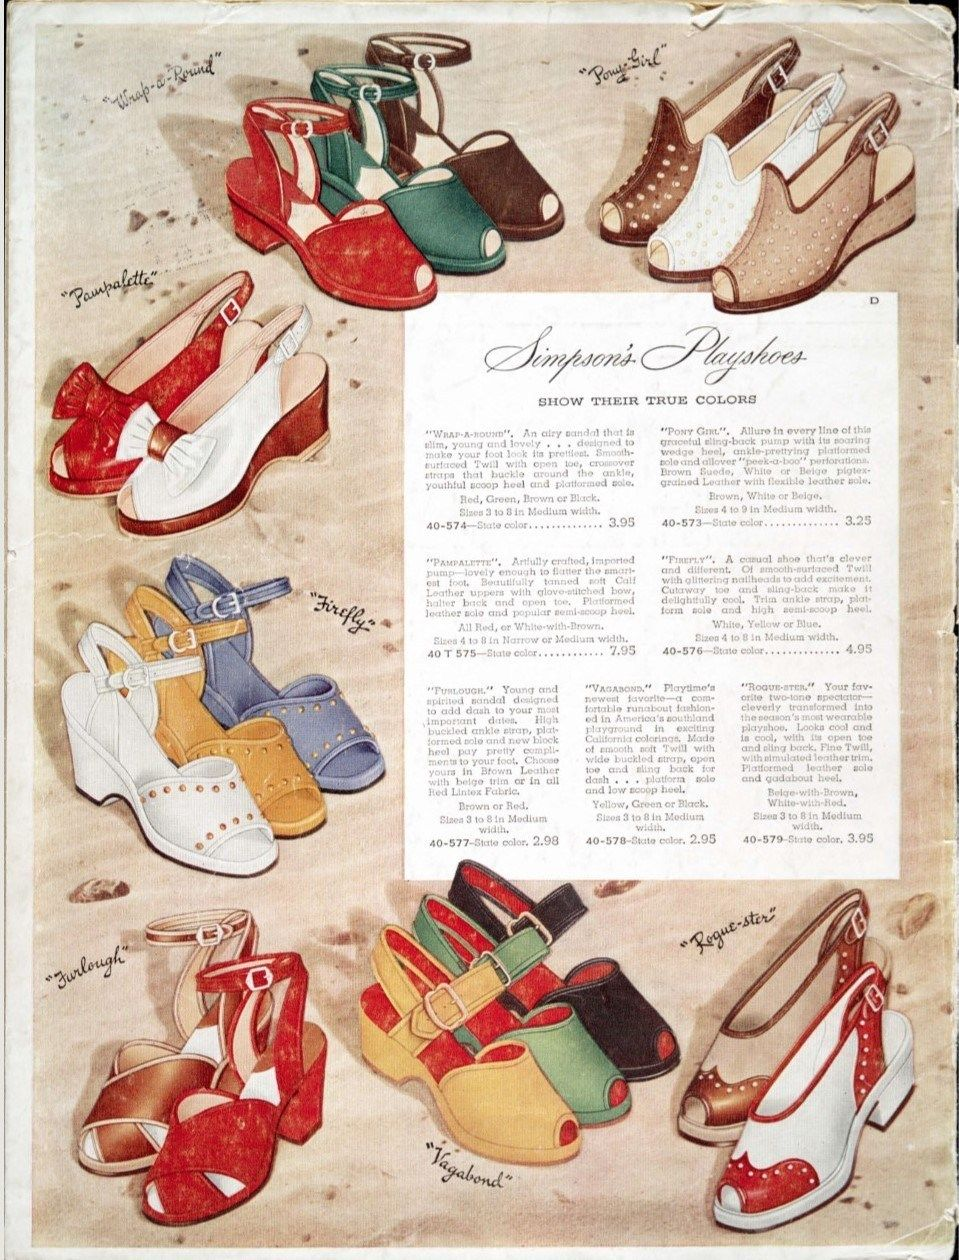 Inside A Canadian Simpson S Catalogue Women S Fashions Of Spring And Summer 1945 Fashion Fashion Illustration Vintage 1940s Fashion Women